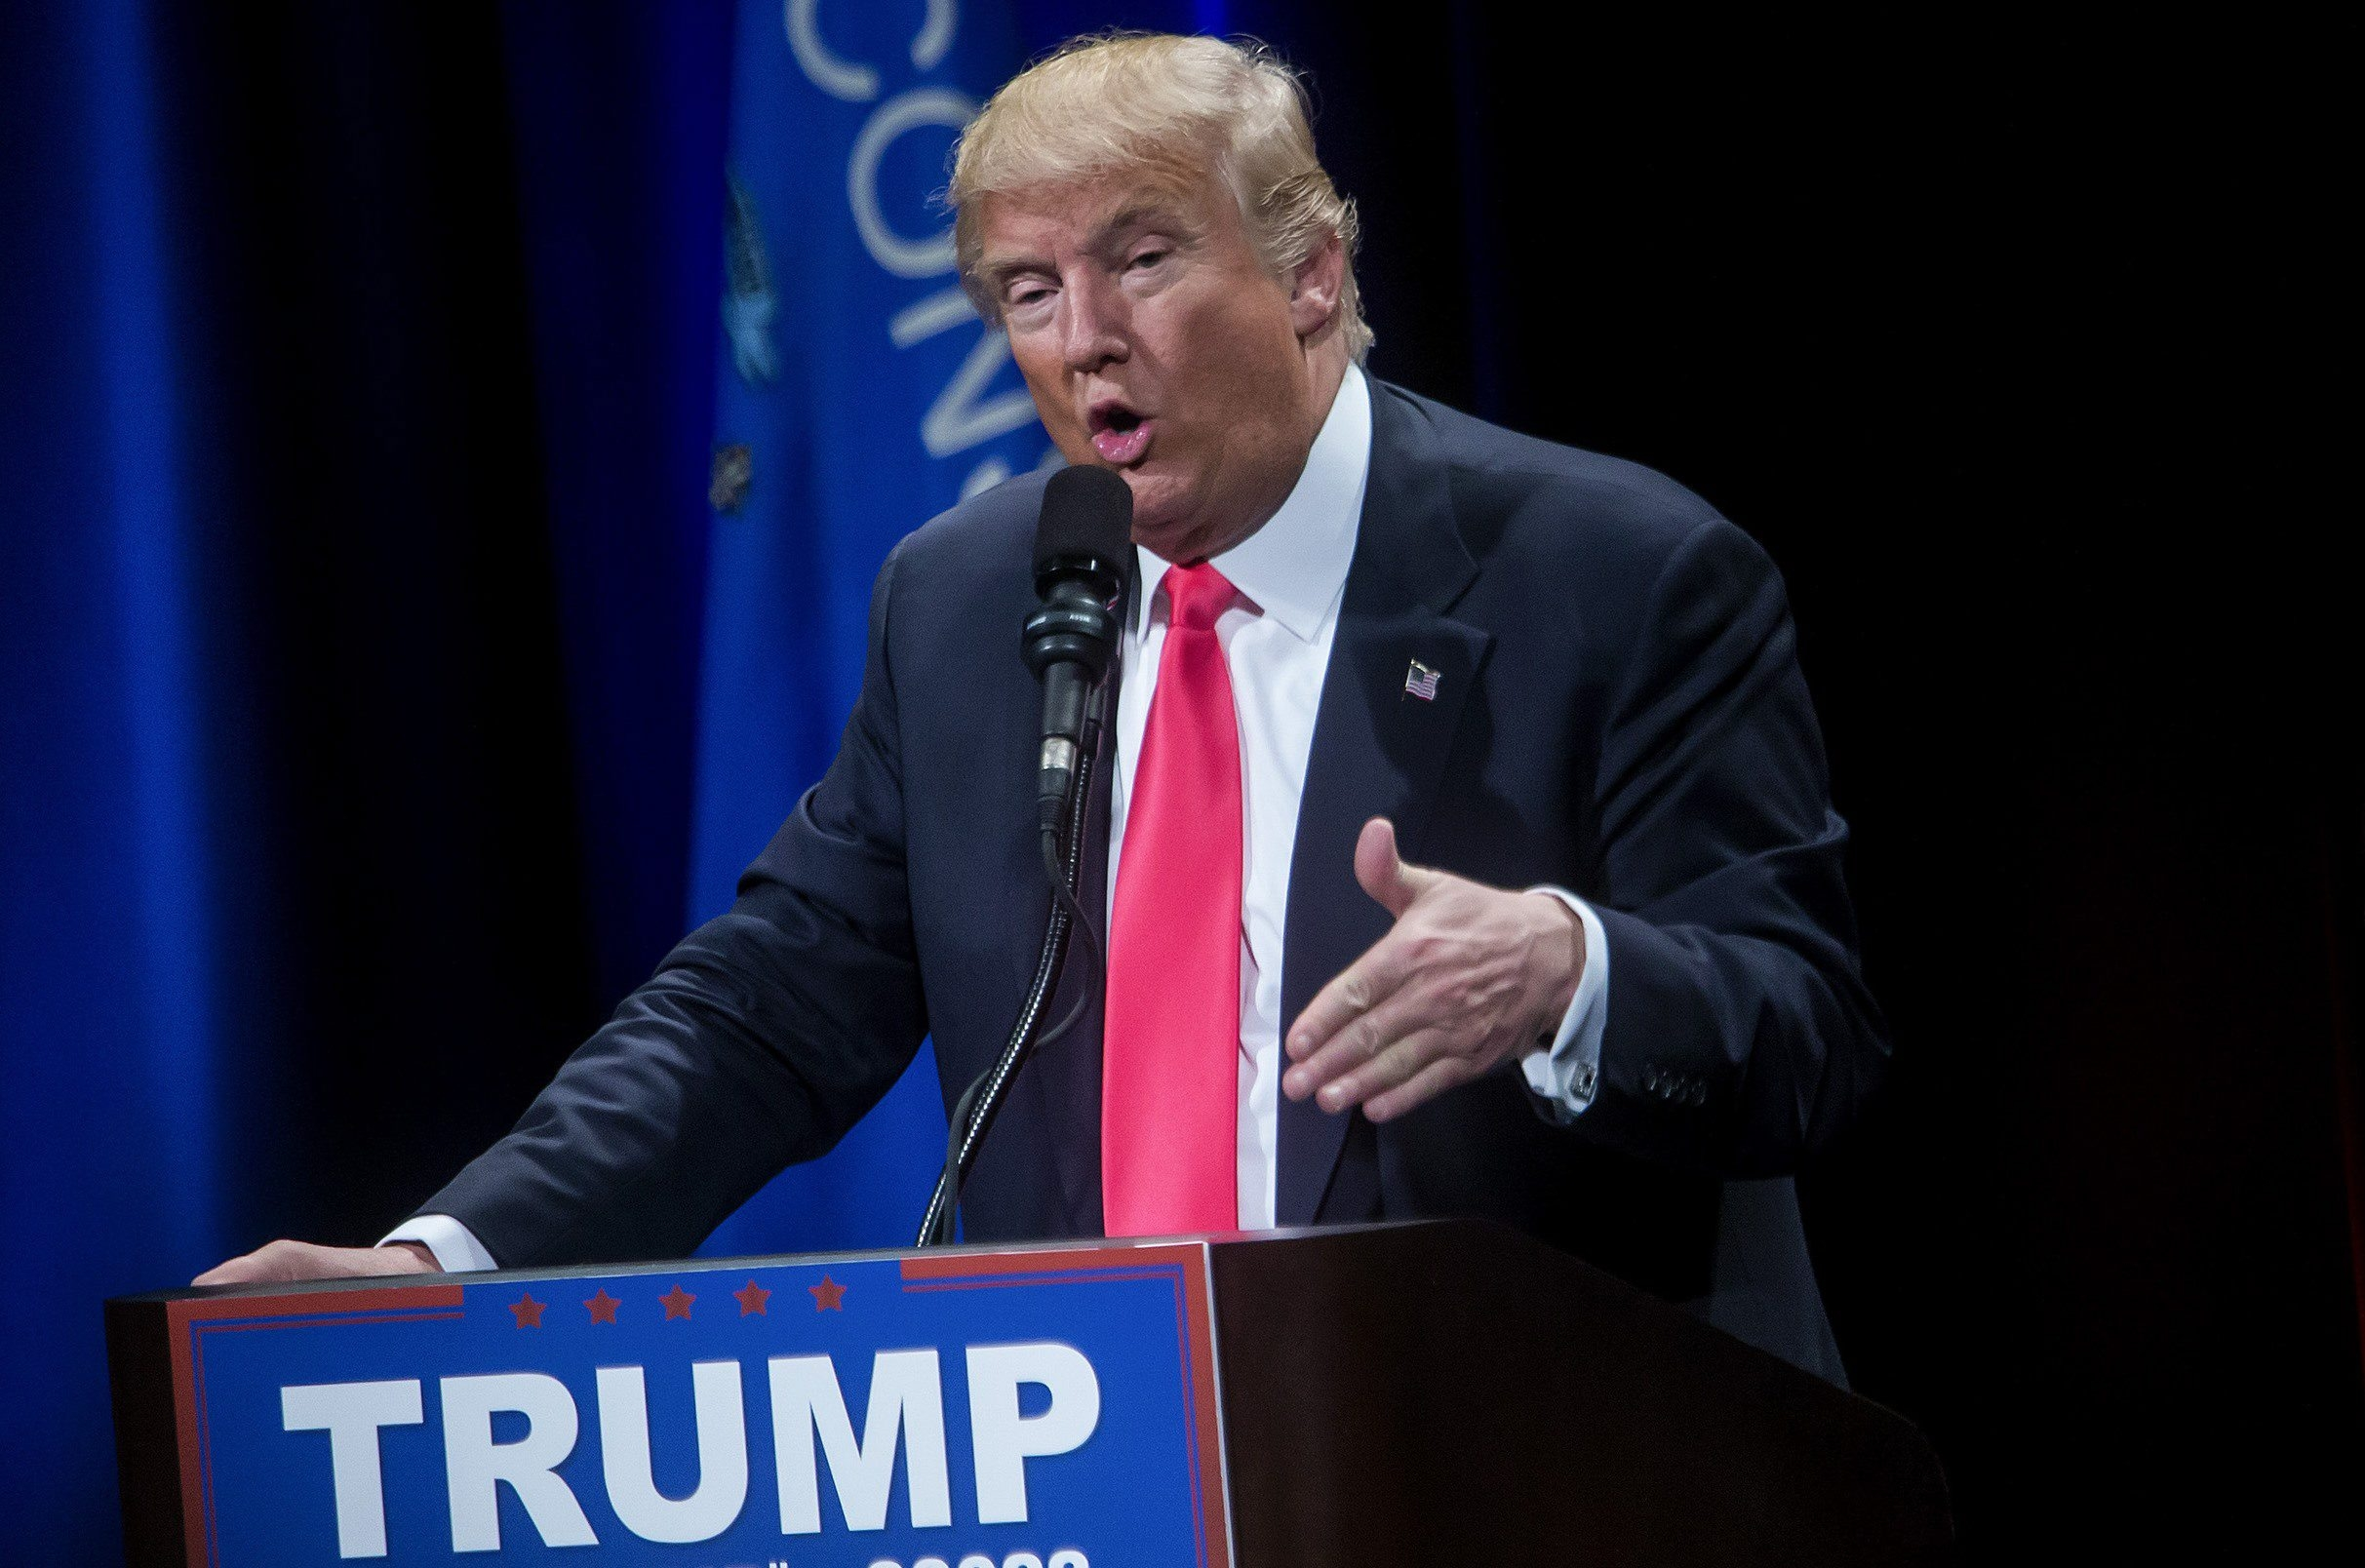 Donald Trump will hold a campaign rally at First Niagara Center on April 17. (New York Times)